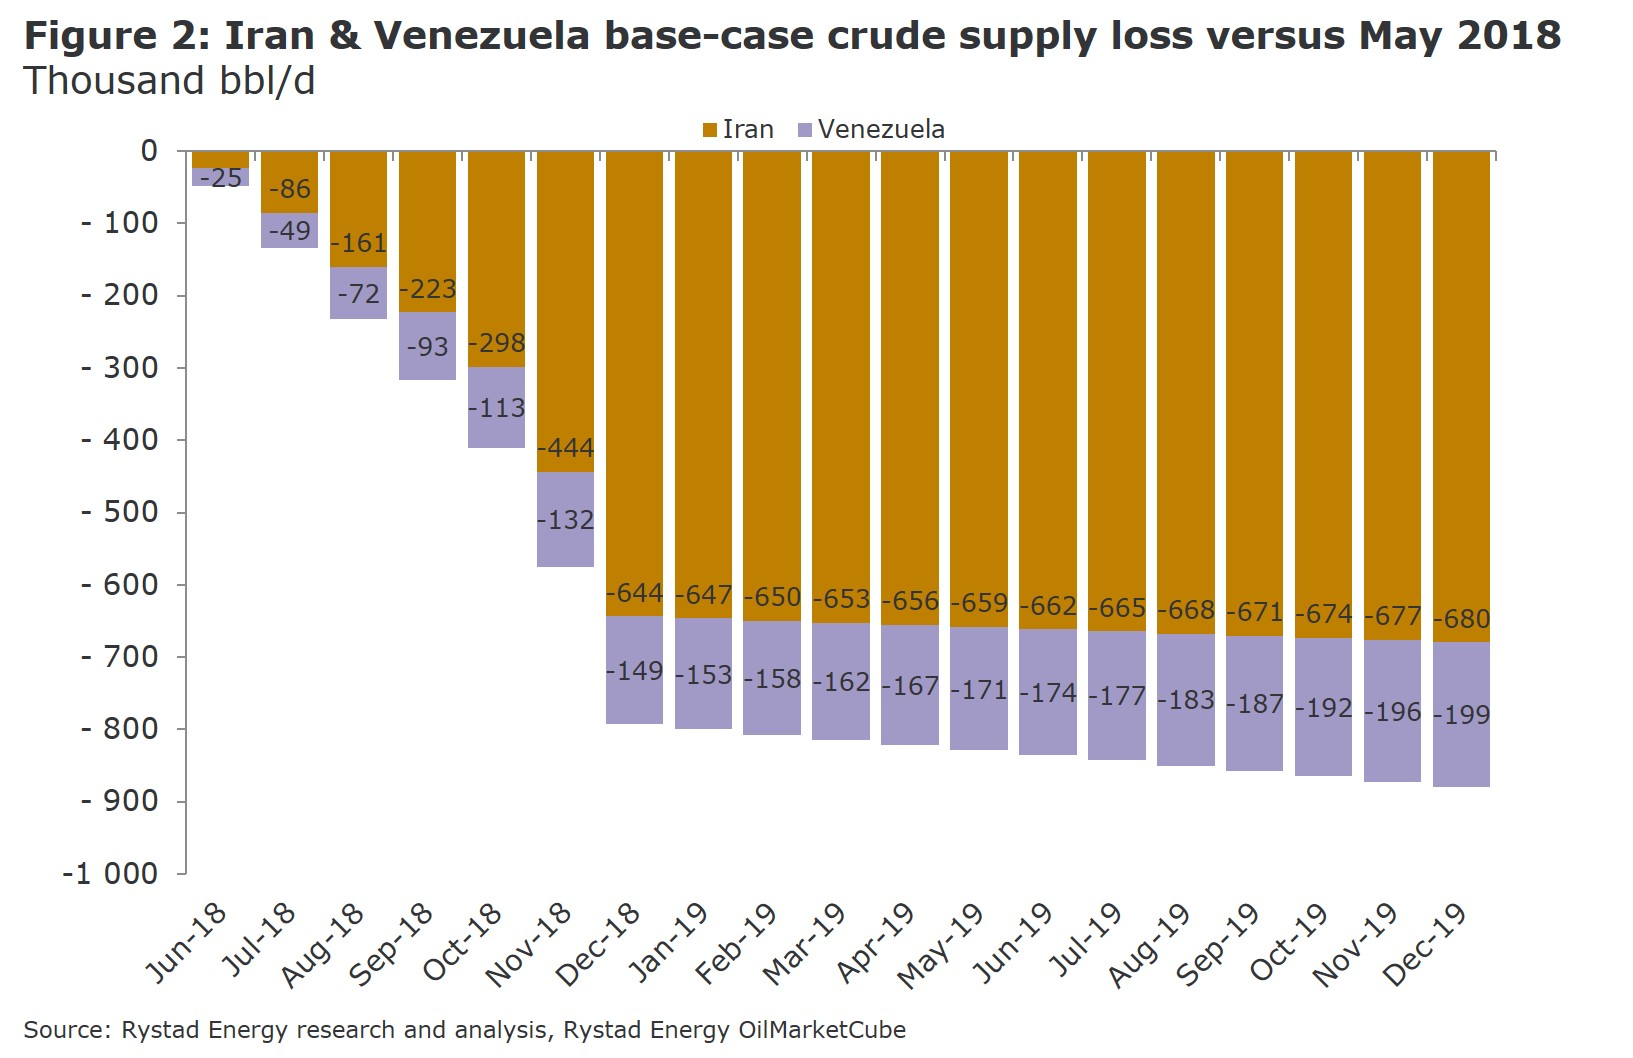 Figure 2: A bar chart showing Iran & Venezuela base-case crude supply loss versus May 2018 in Thousand bbl/d